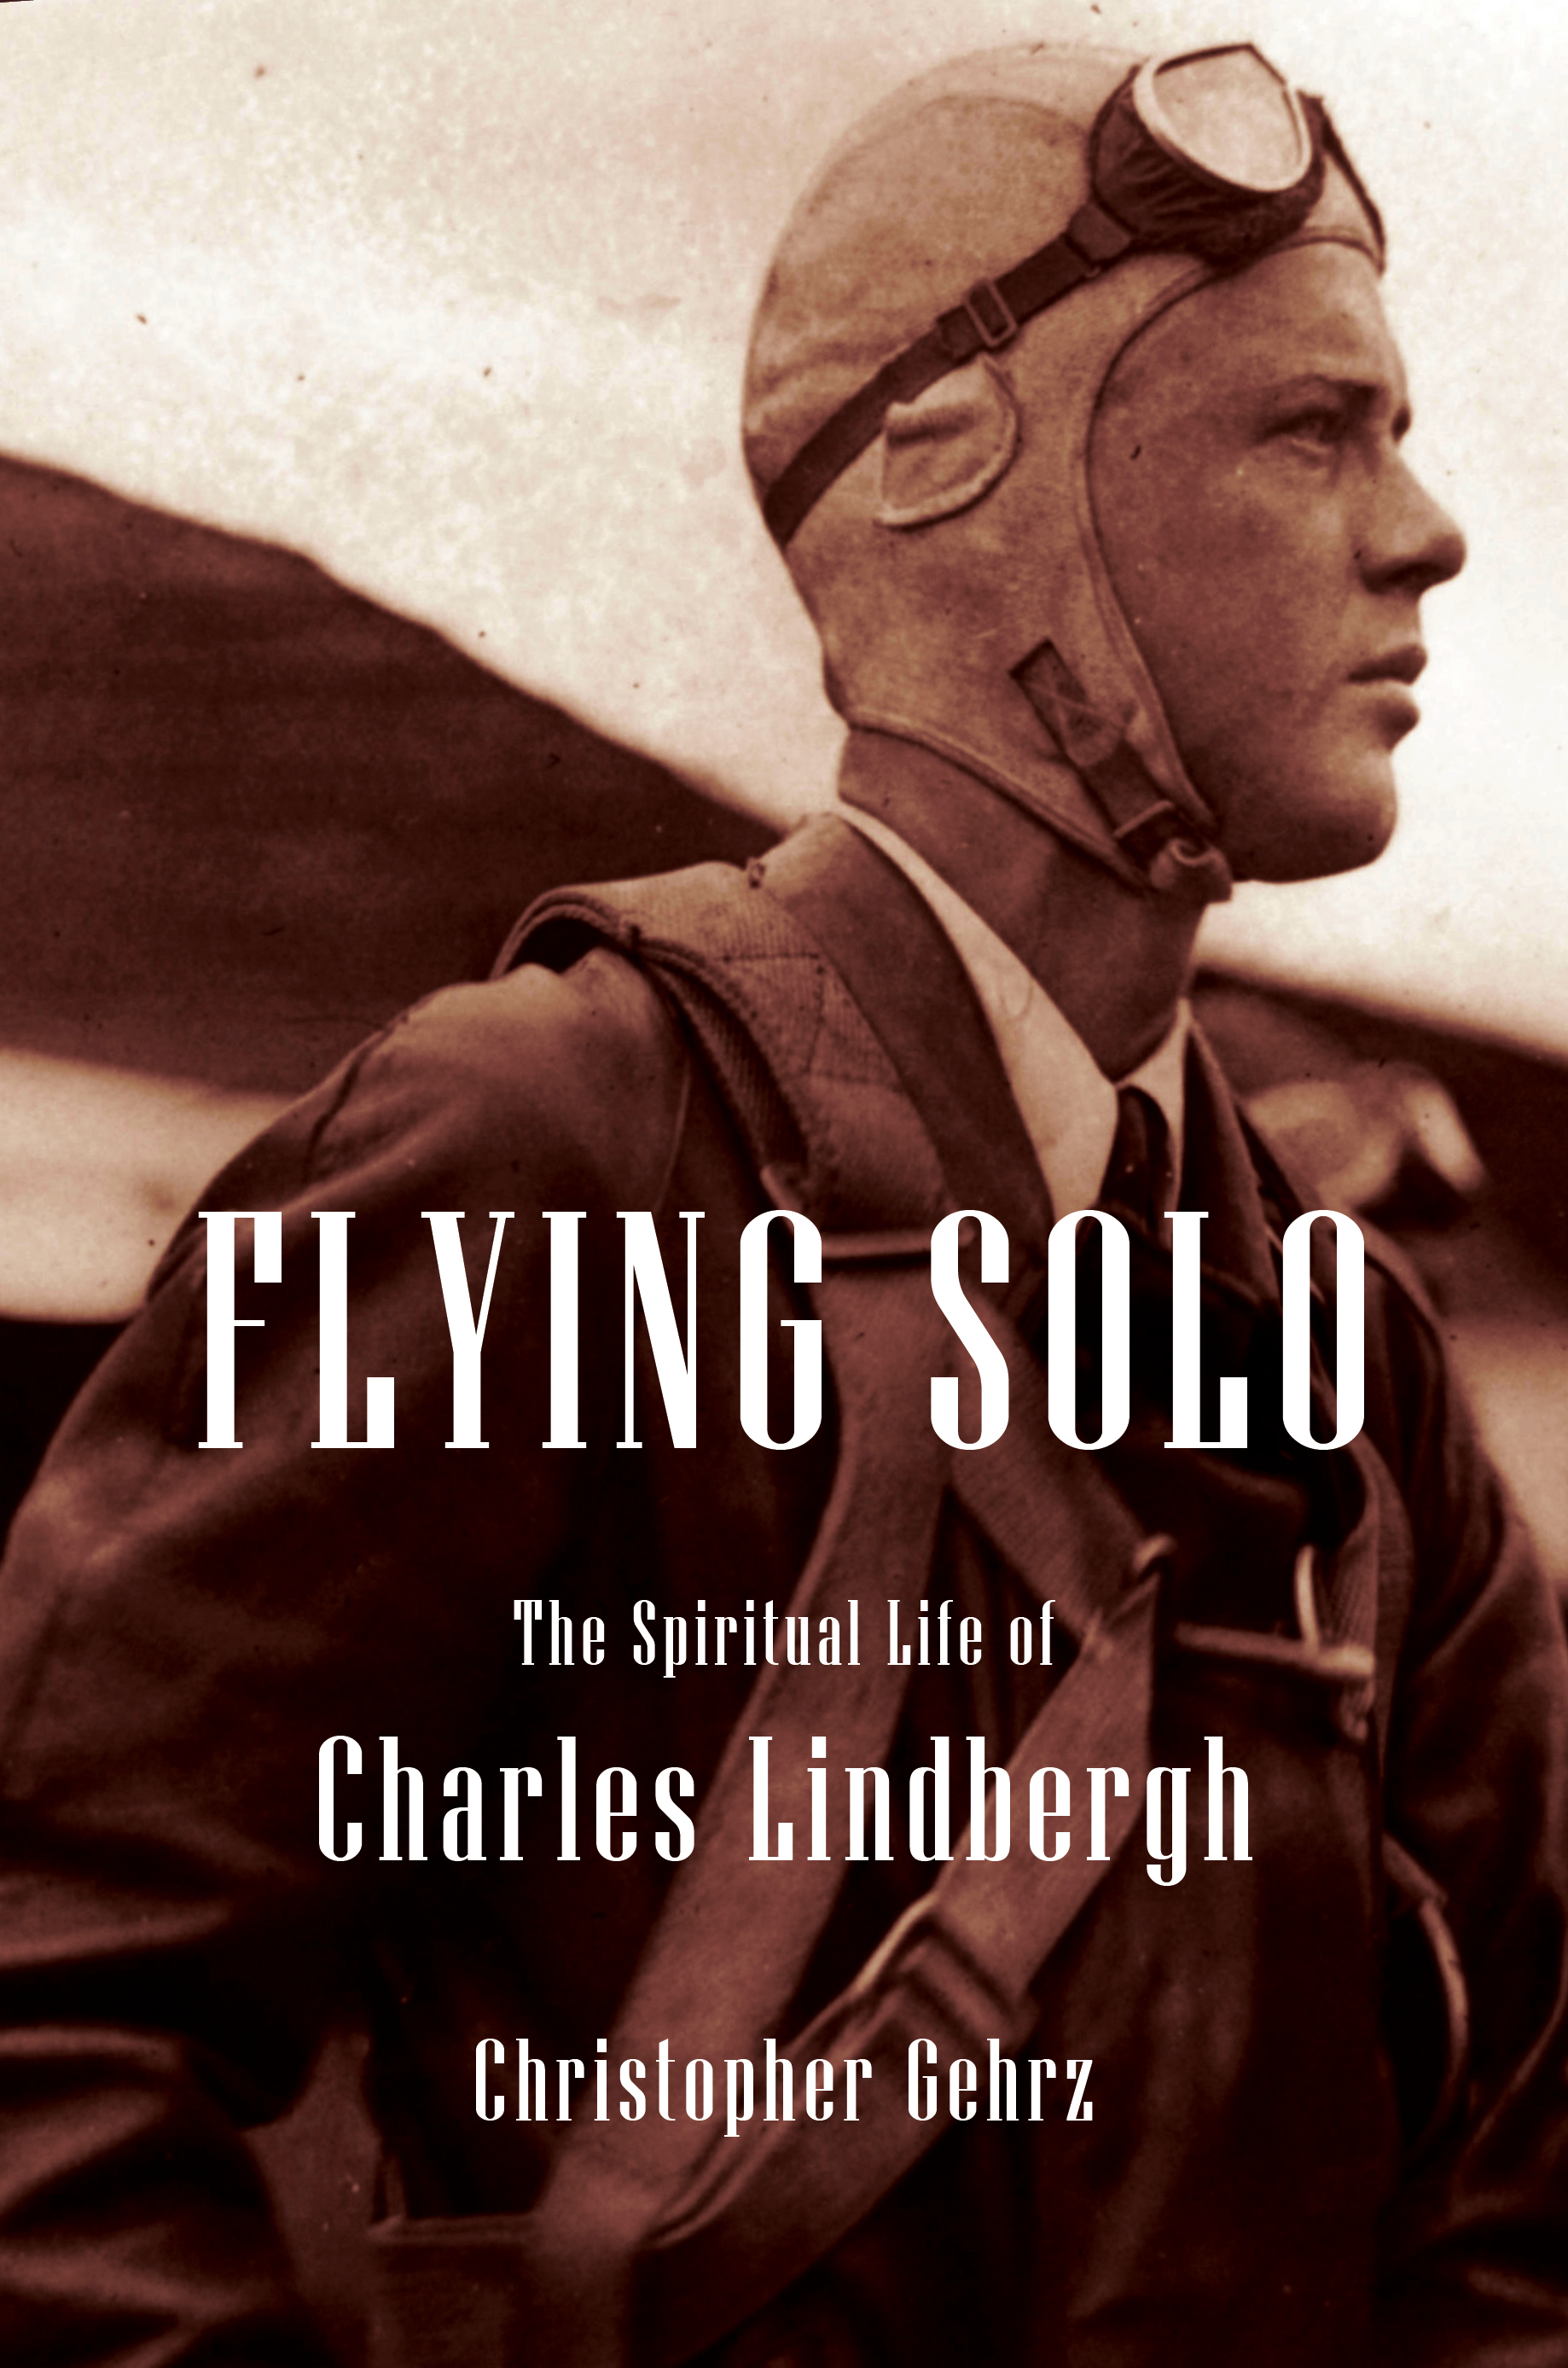 Now Available for Preorder: My Charles Lindbergh Biography